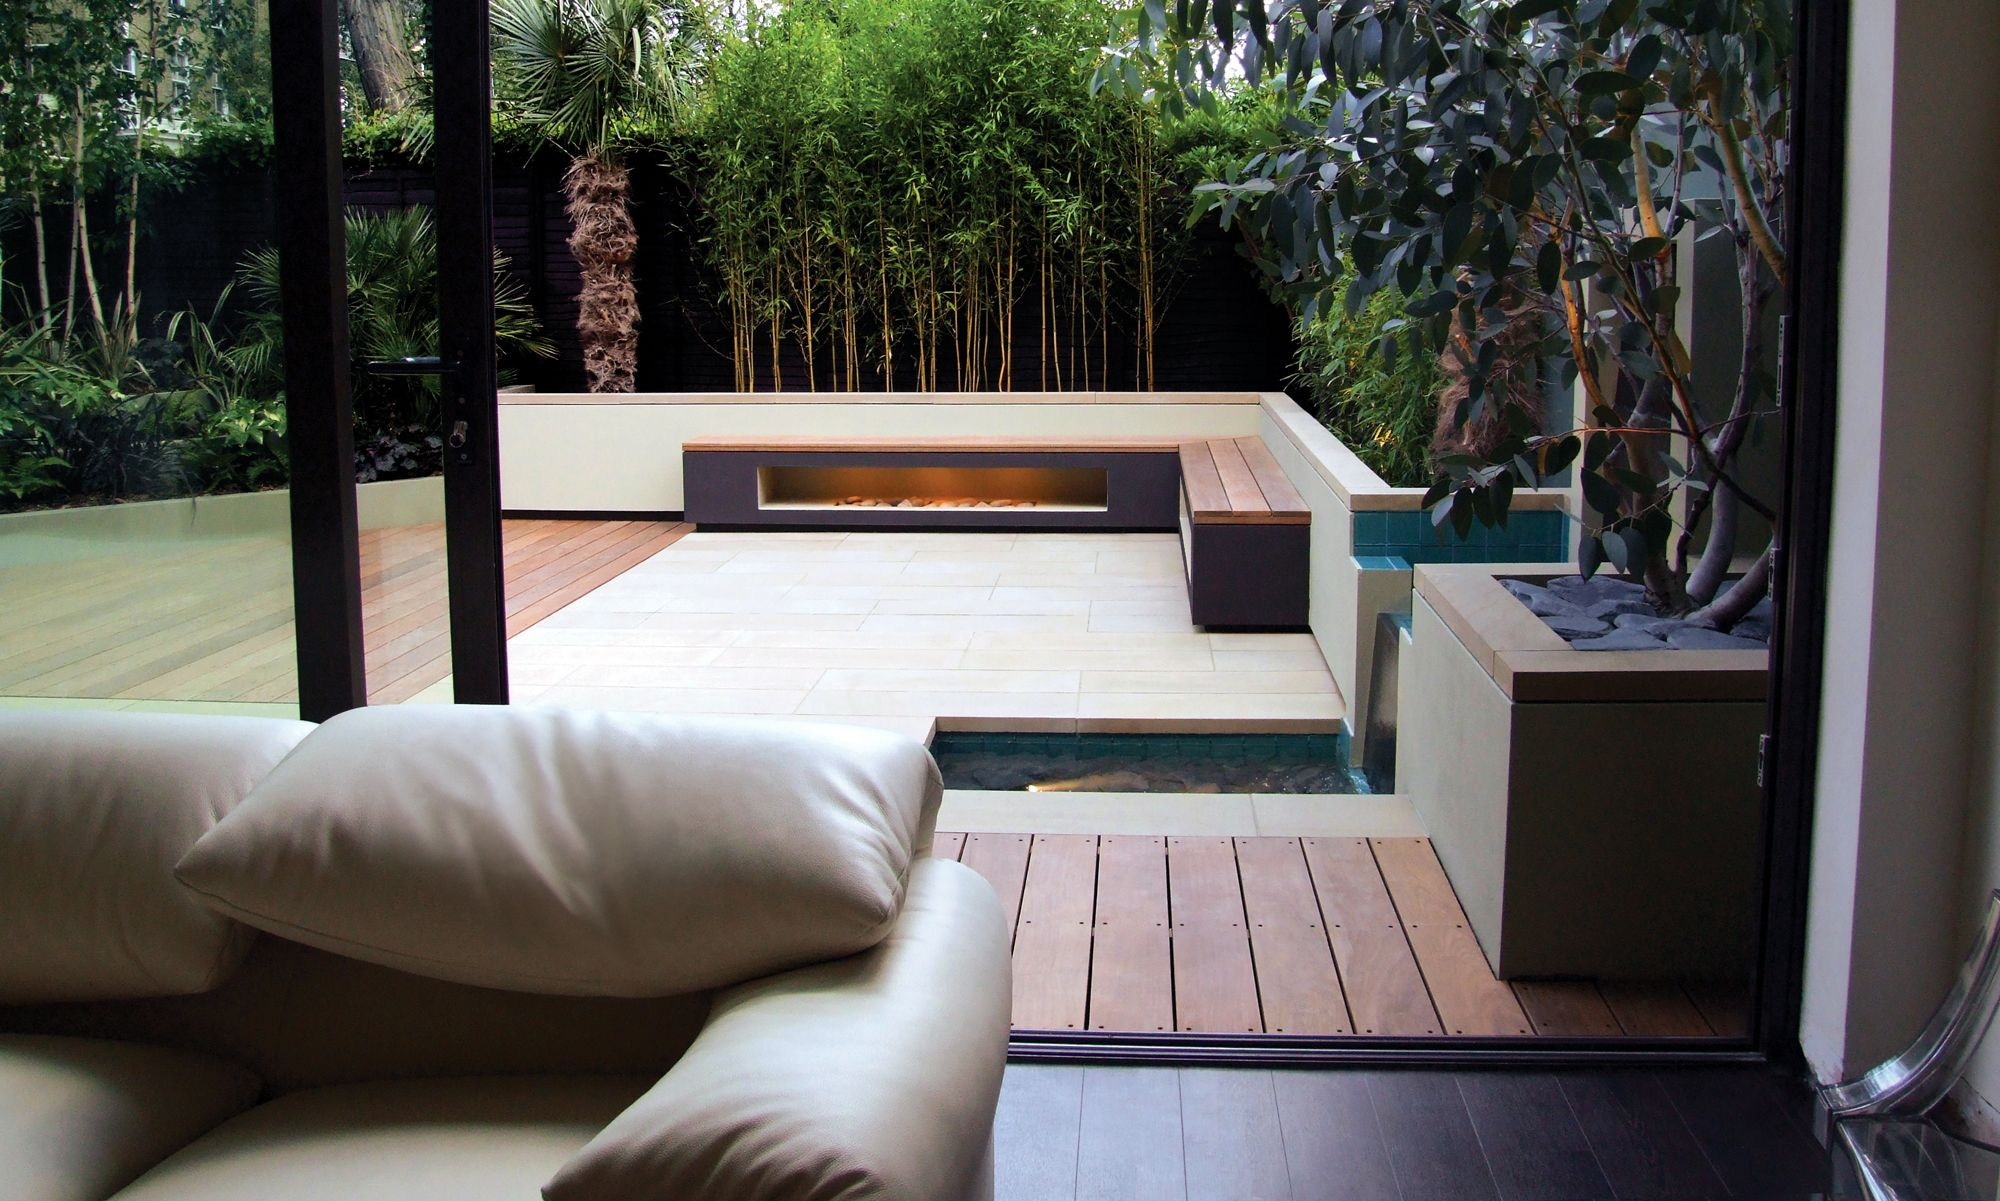 the l shaped bench picks up on the shape of the interior white leather sofa - L Shape Garden Decor